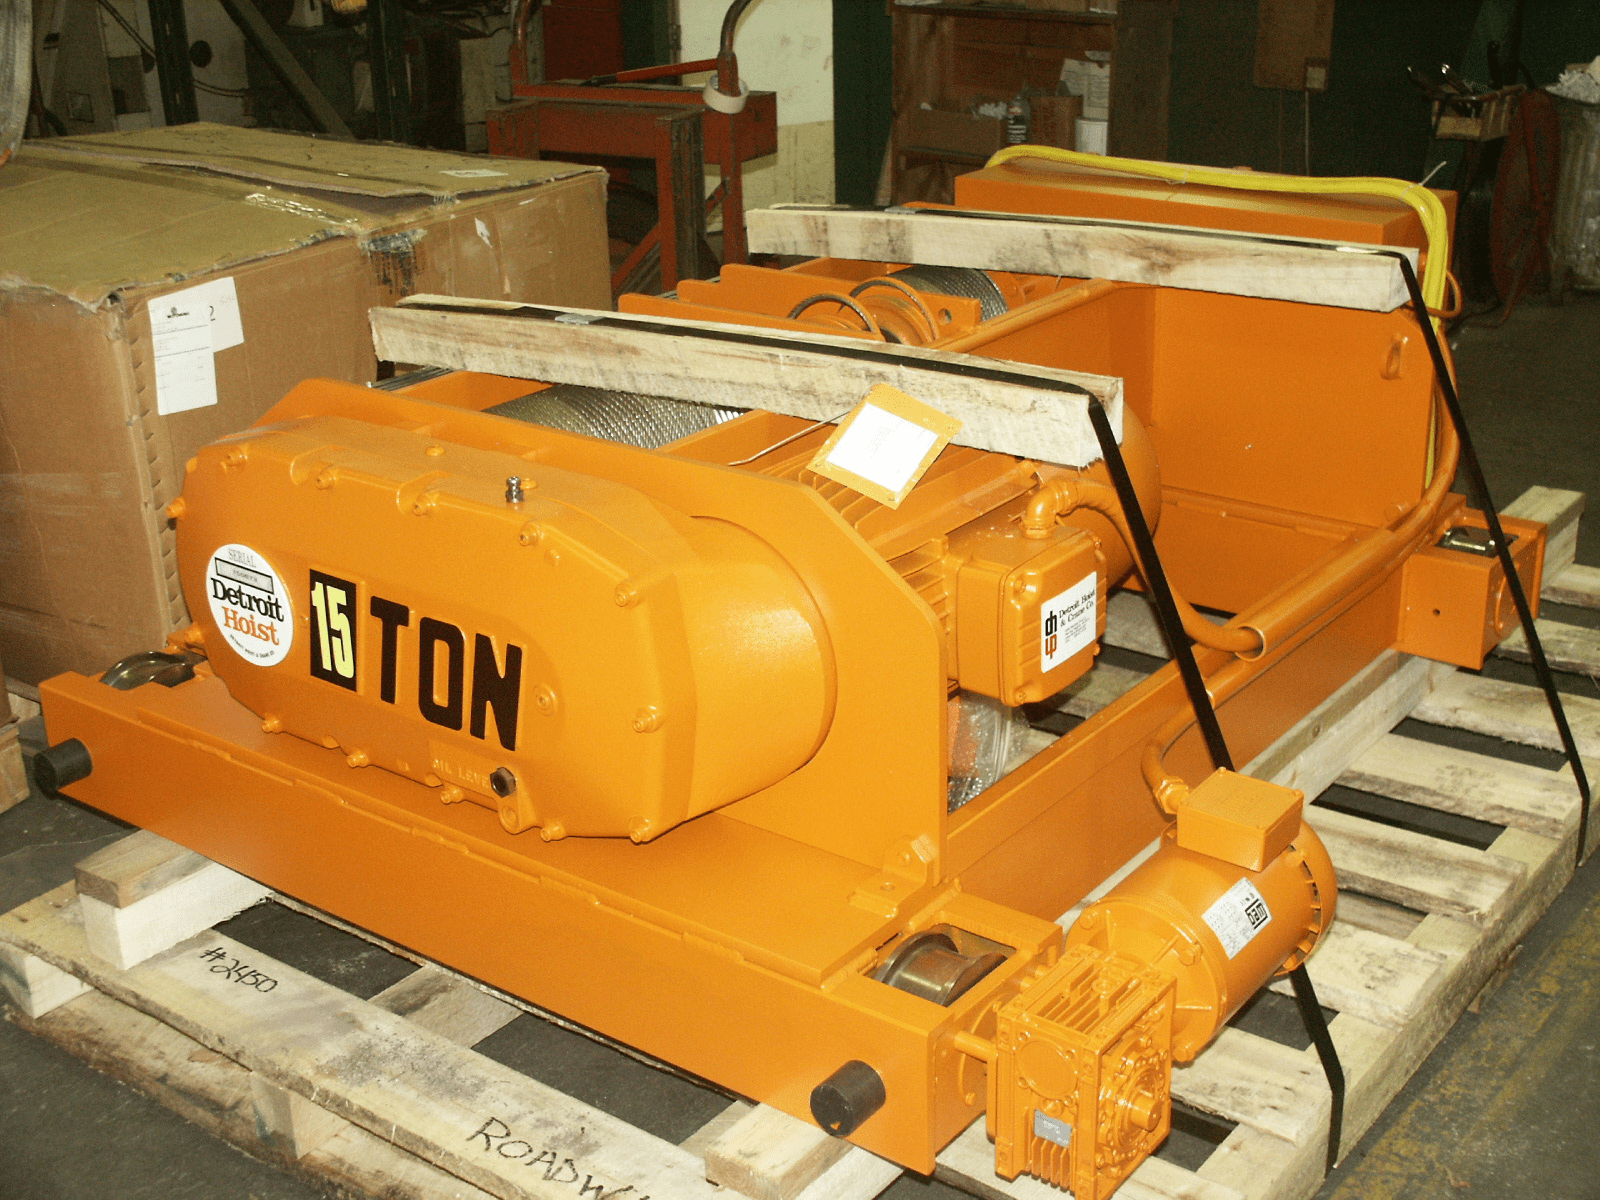 Detroit 20 Ton TRDG Electric Wire Rope Hoist, 20/5 FPM